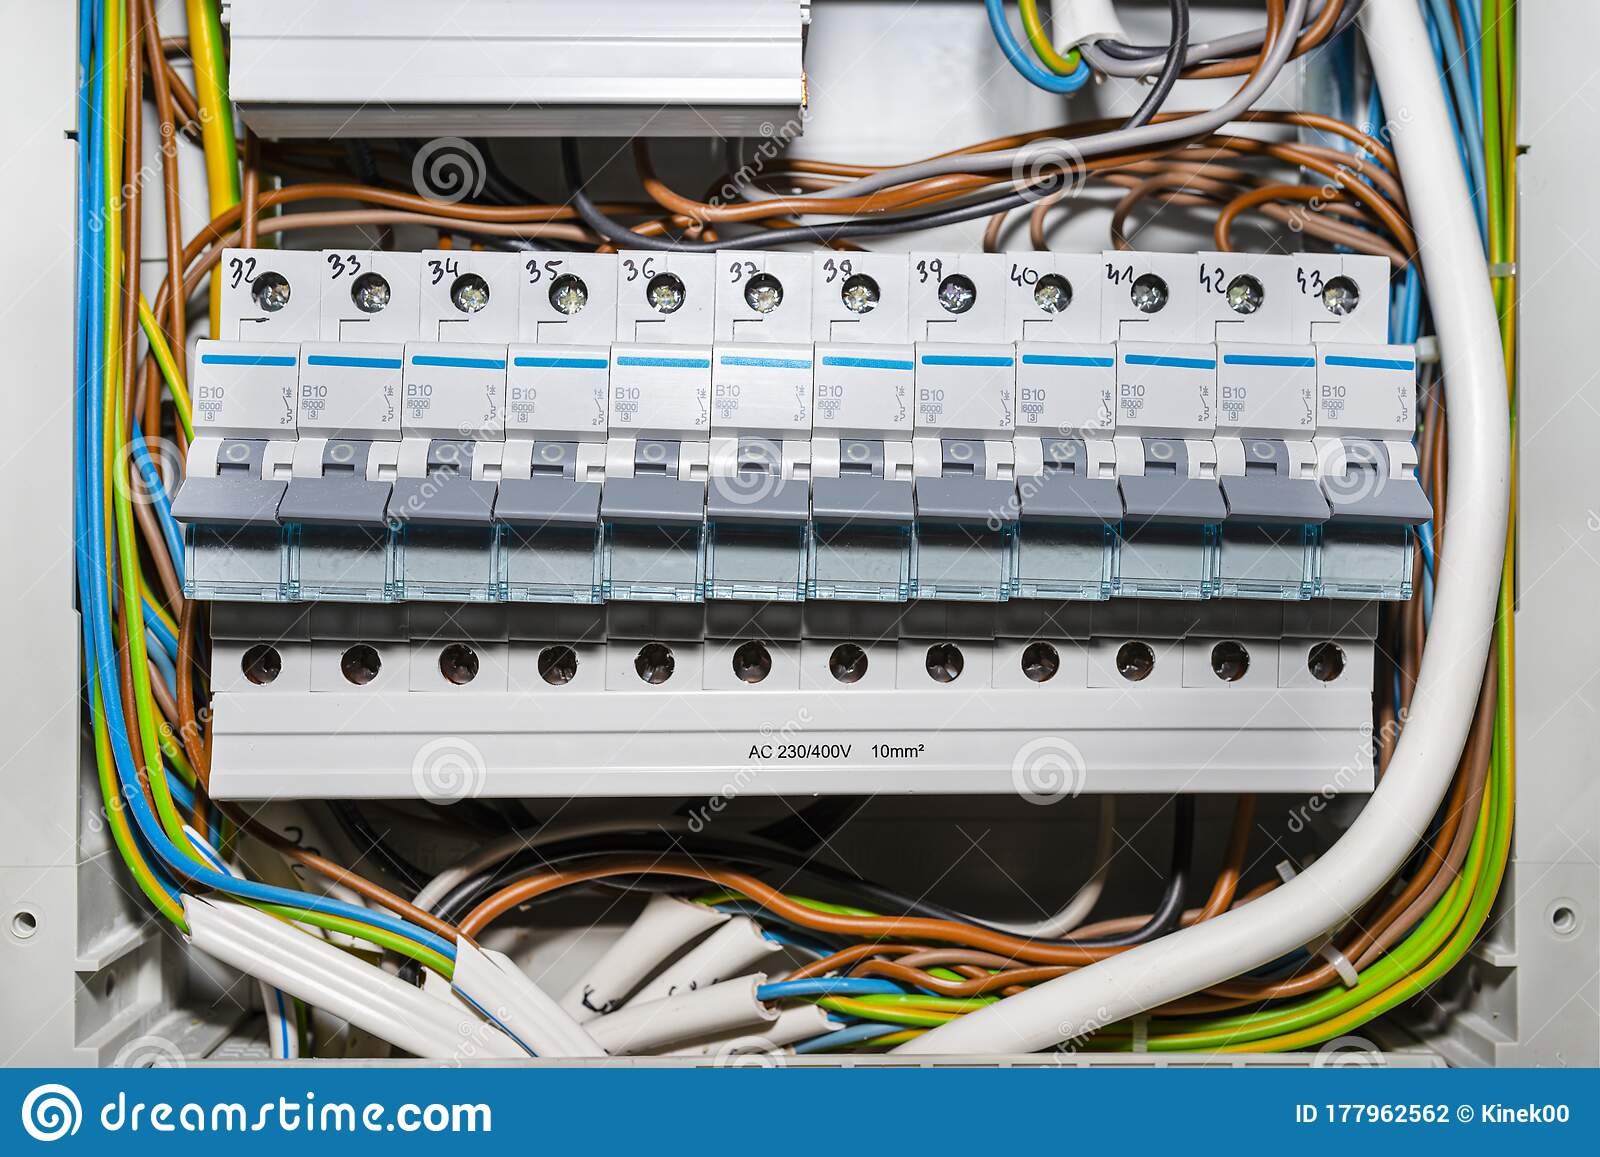 Single Phase Fuses In The Off Position Placed In The Home Fuse Box Visible Electric Wires Stock Photo Image Of Board Breakers 177962562